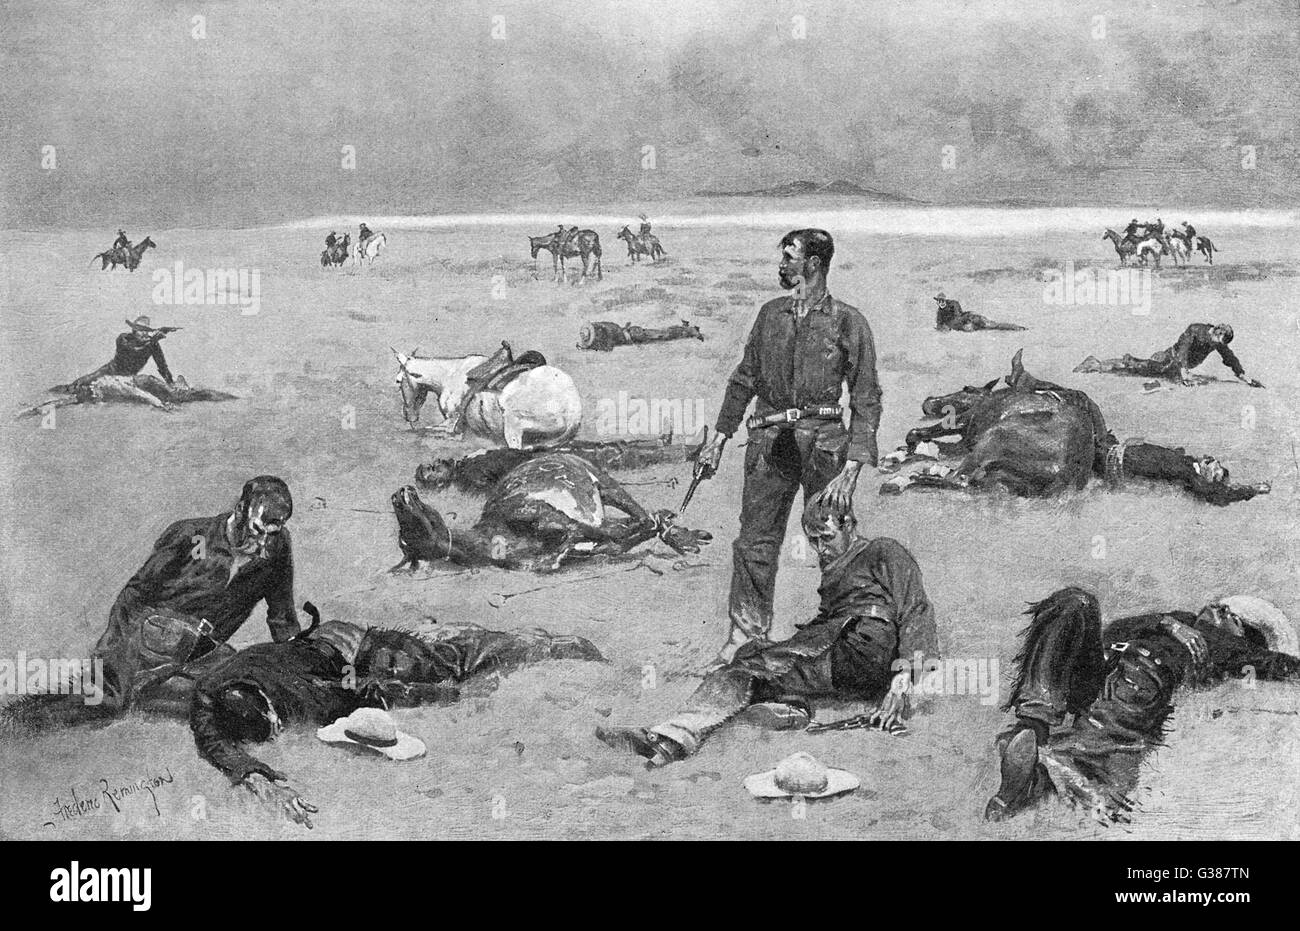 The aftermath of a cattle  fight - what an unbranded cow  has cost       Date: 1895 - Stock Image